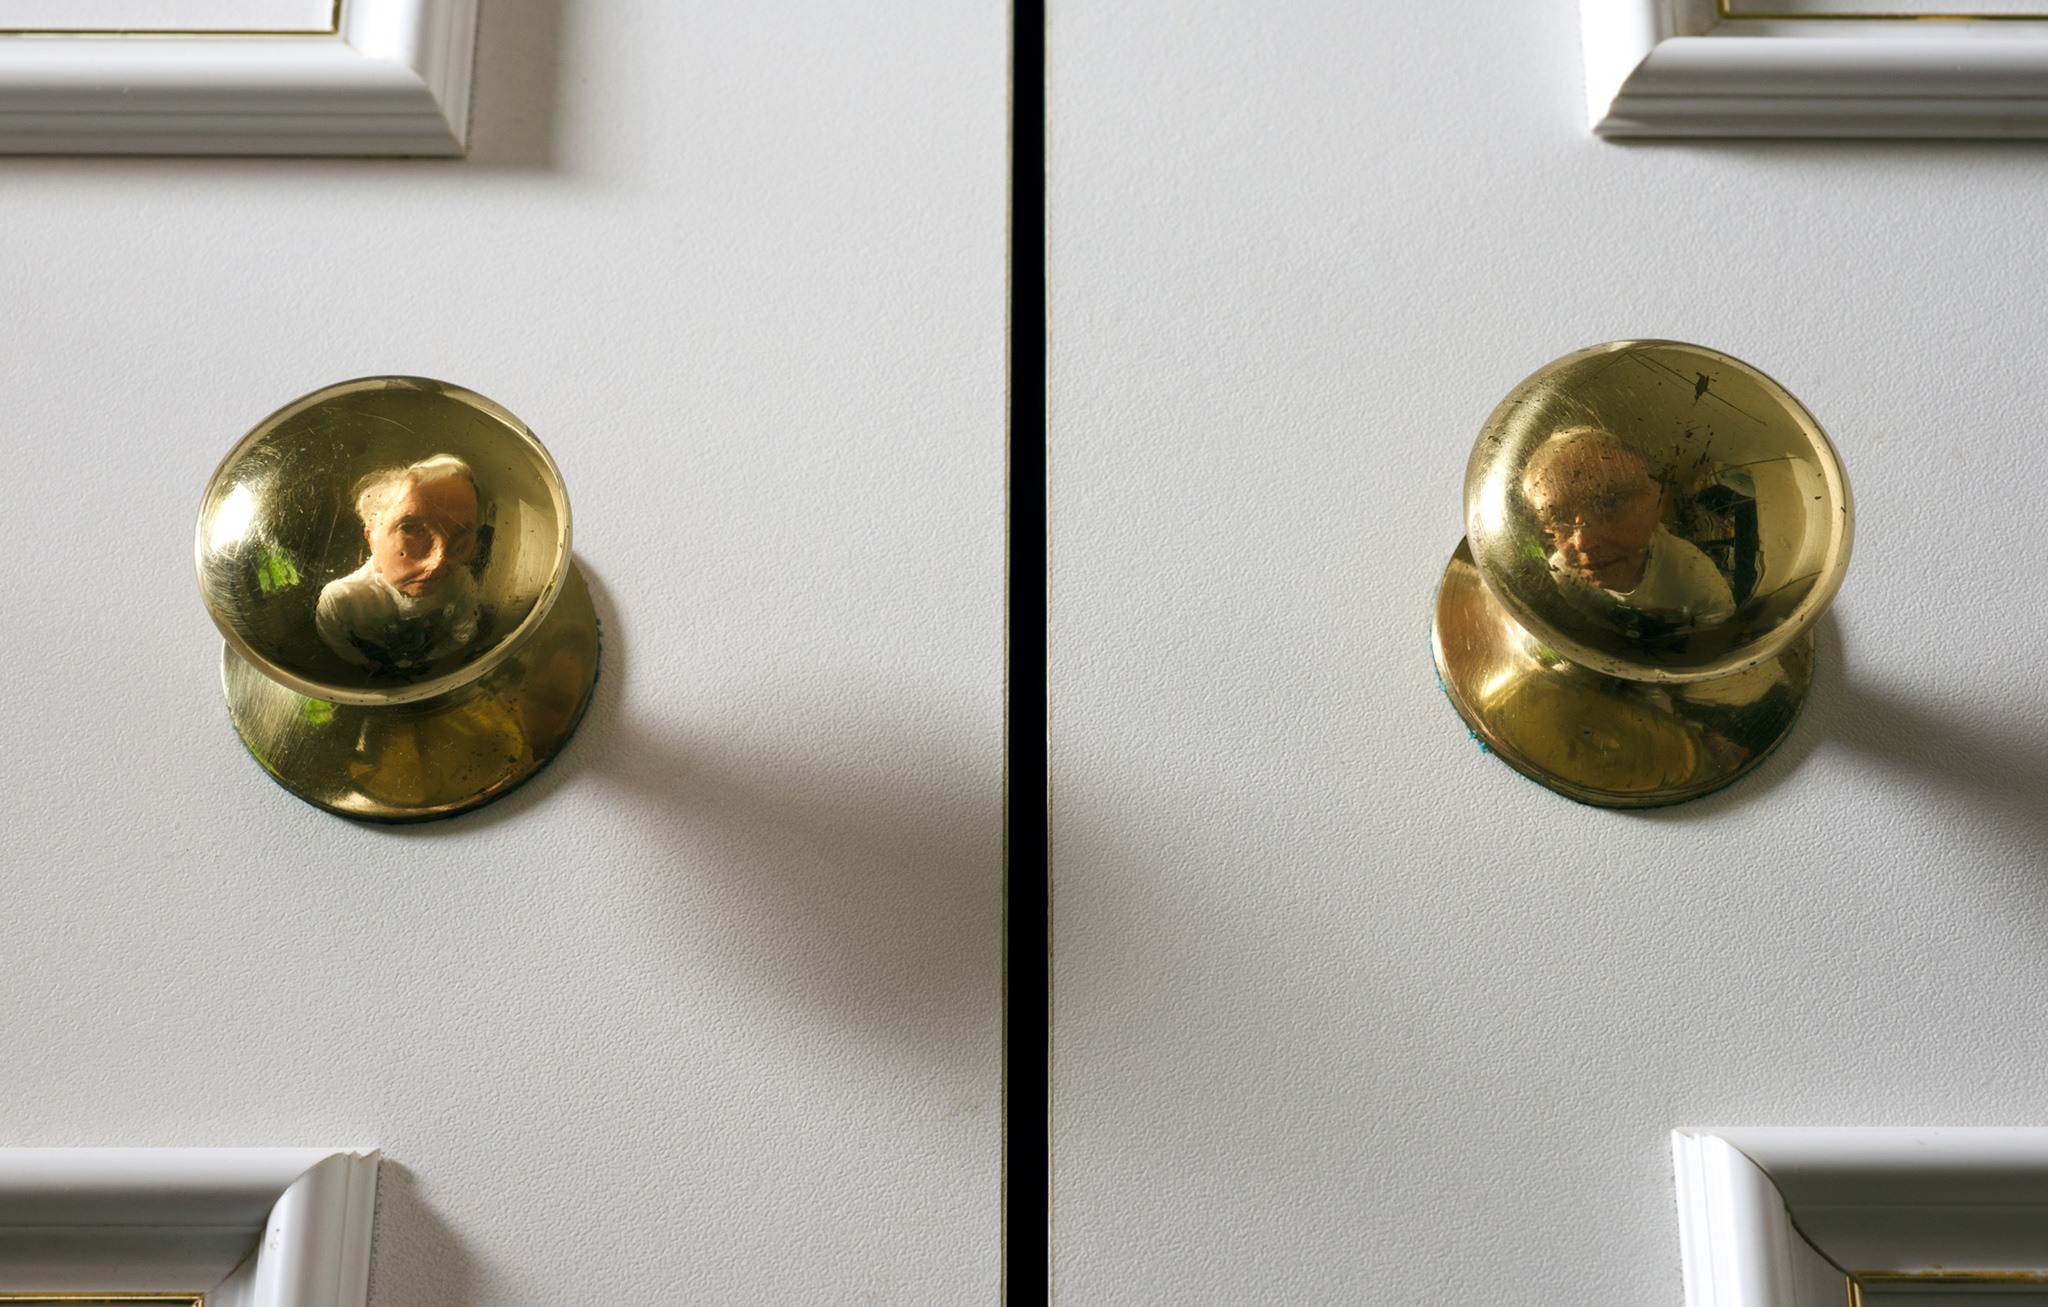 'Graham's reflected 1', Graham Land, June, 2018. Created by positioning an LED light close to me face with the camera fitted with a macro lens focused on the two brass wardrobe door knobs.